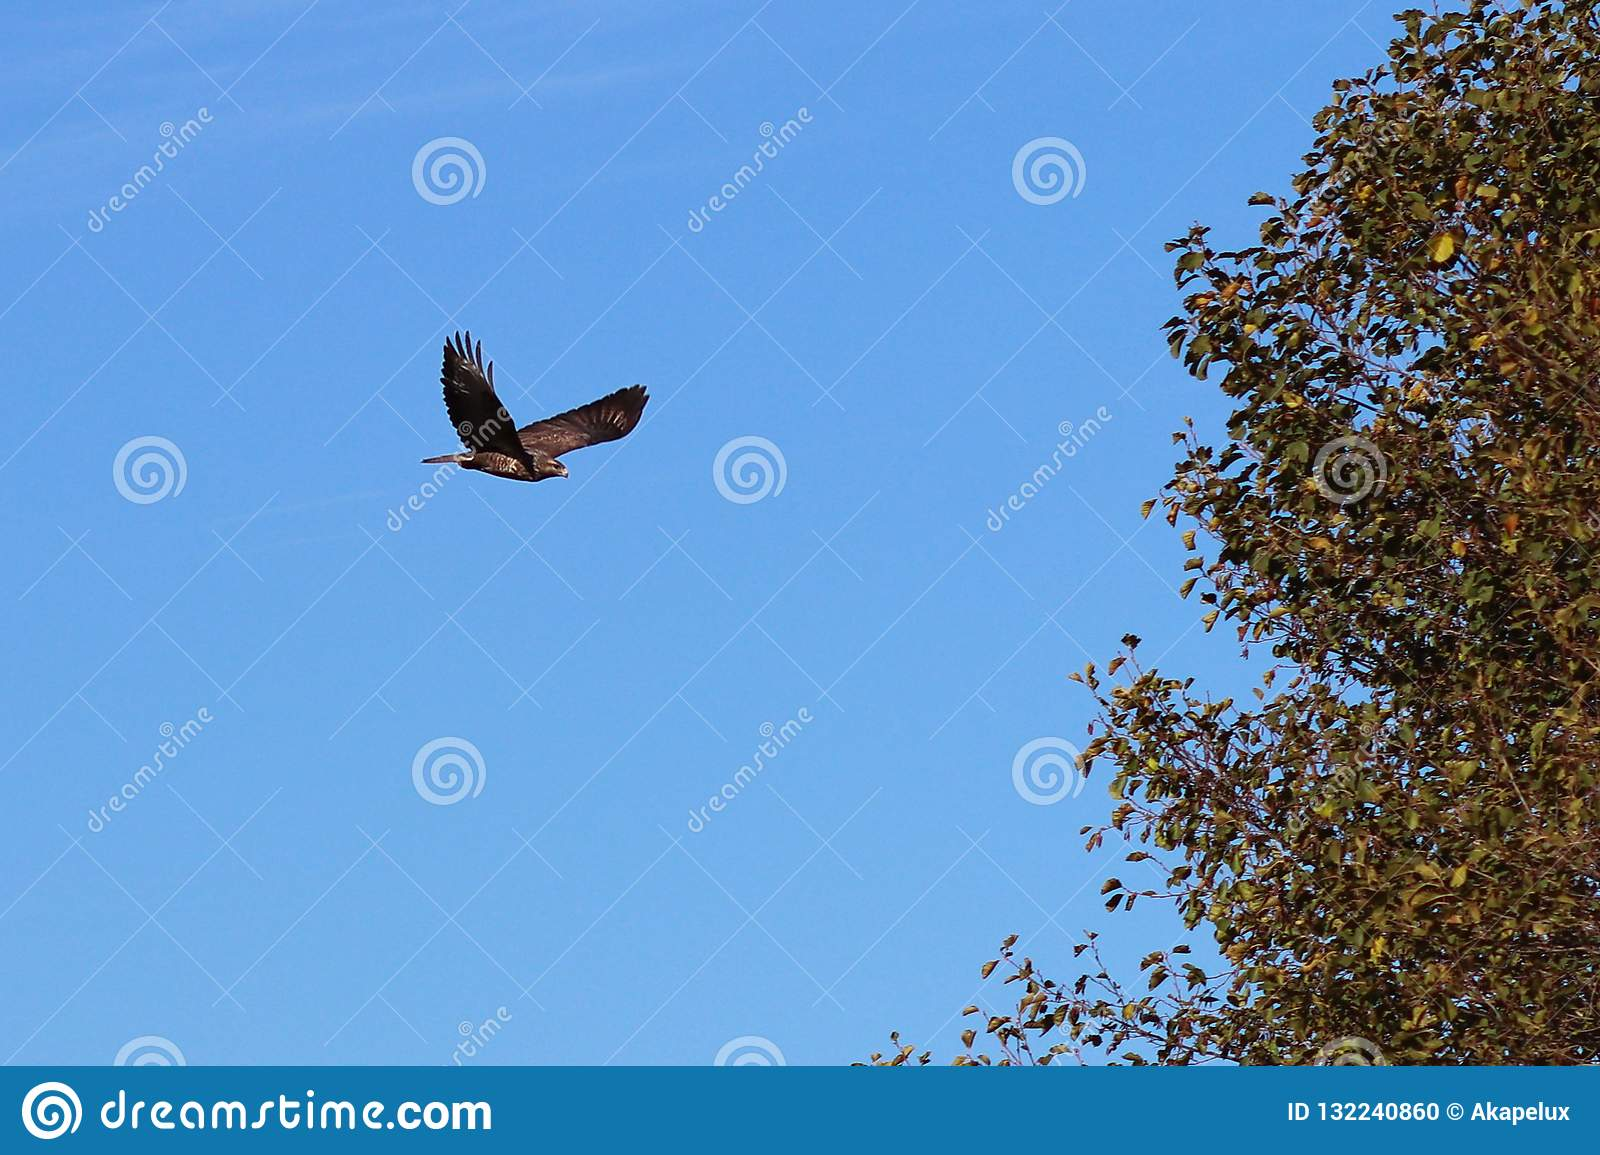 An eagle with spread wings flies against the blue sky near a tree. Flying bird is a symbol of freedom and independence. Hunting